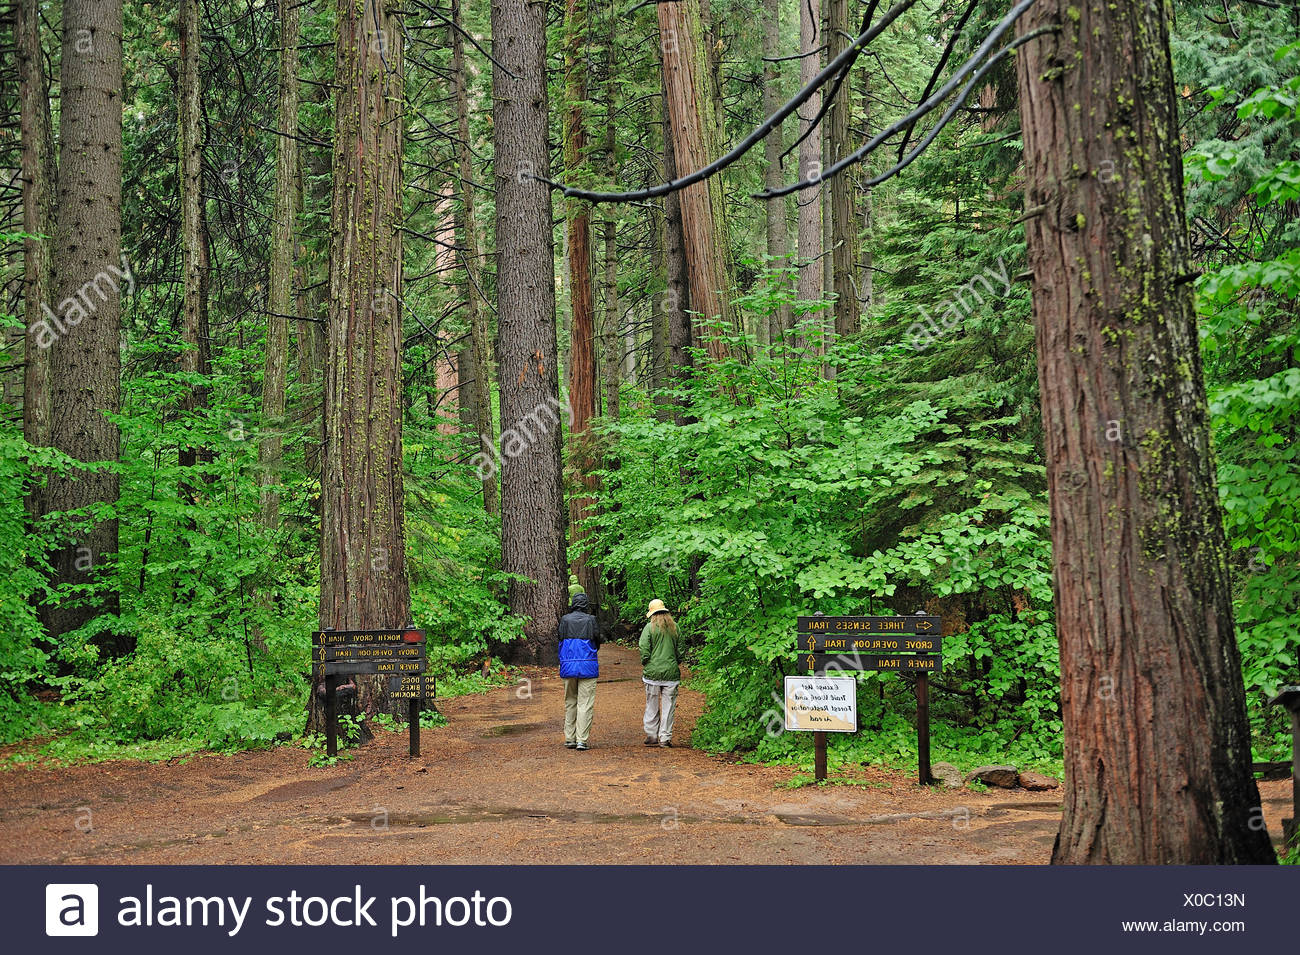 Family, North Grove Trail, Calaveras Big Tree, State Park, California, USA, United States, America, trees, wood, forest - Stock Image